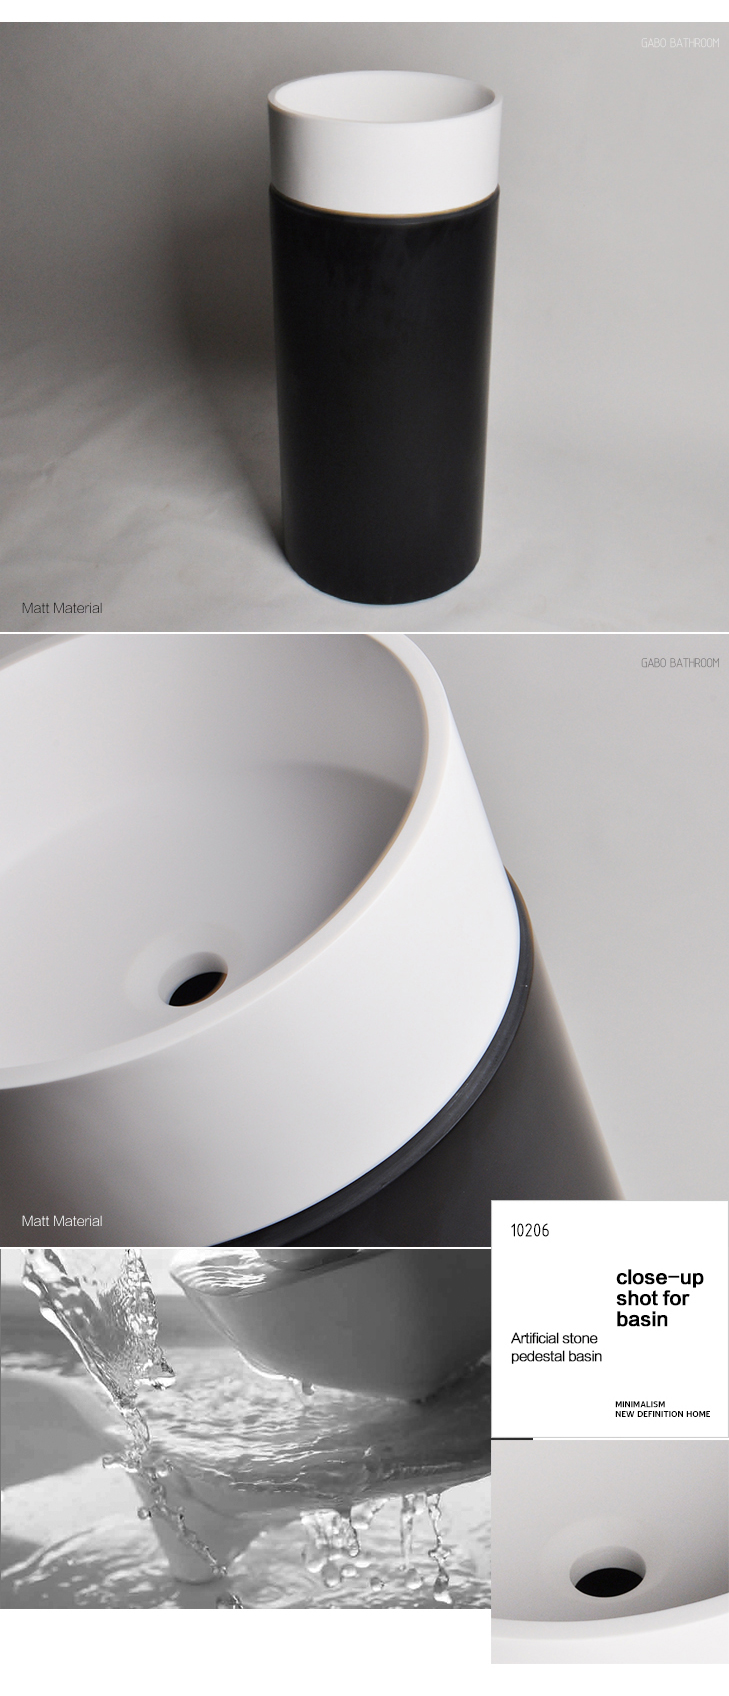 China Wholesale Black Pedestal Wash Basin for Cheap Price